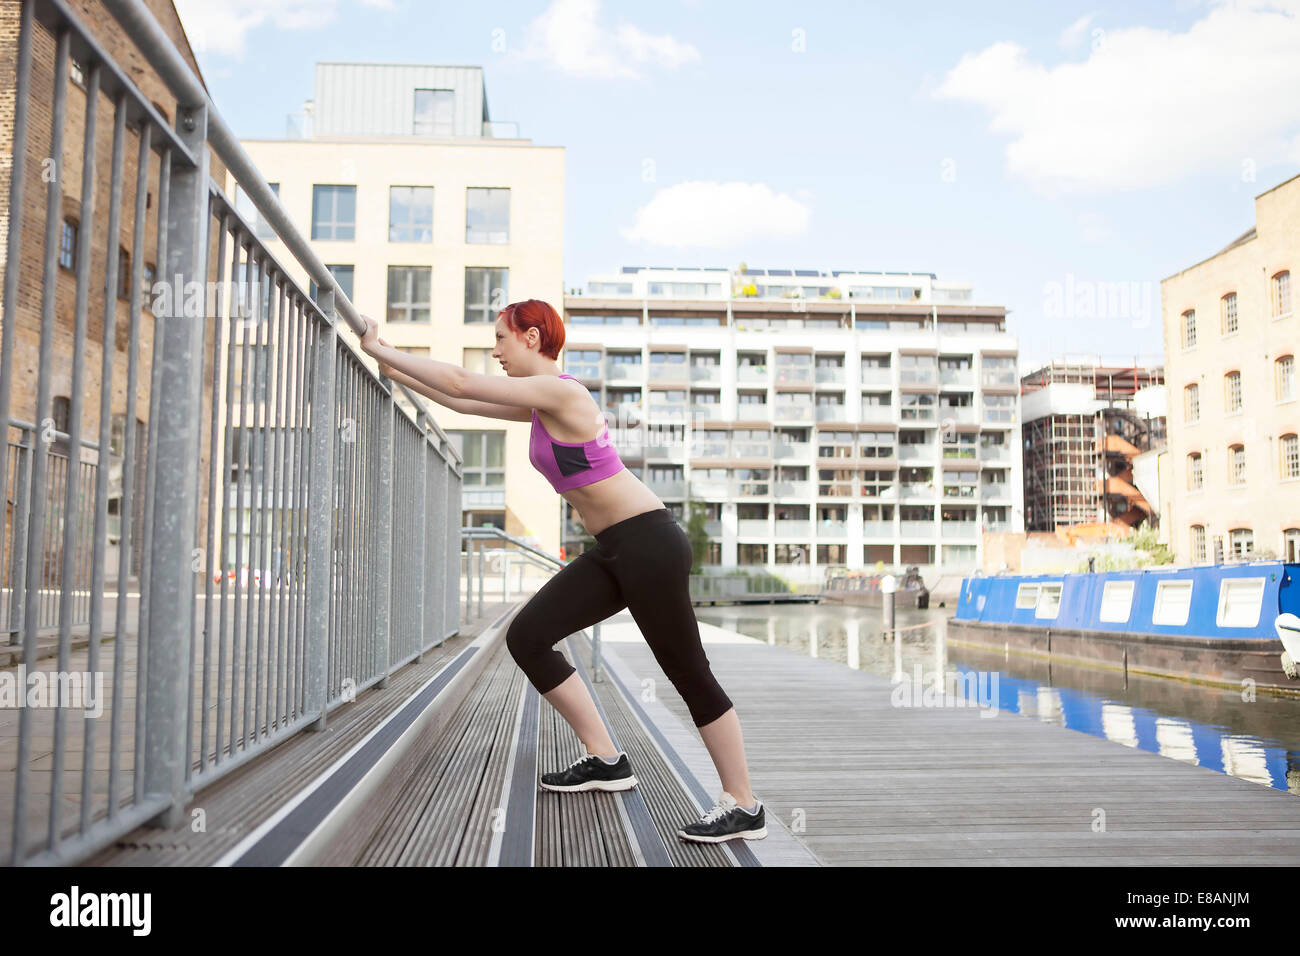 Woman doing stretching exercise, building in background, East London, UK - Stock Image